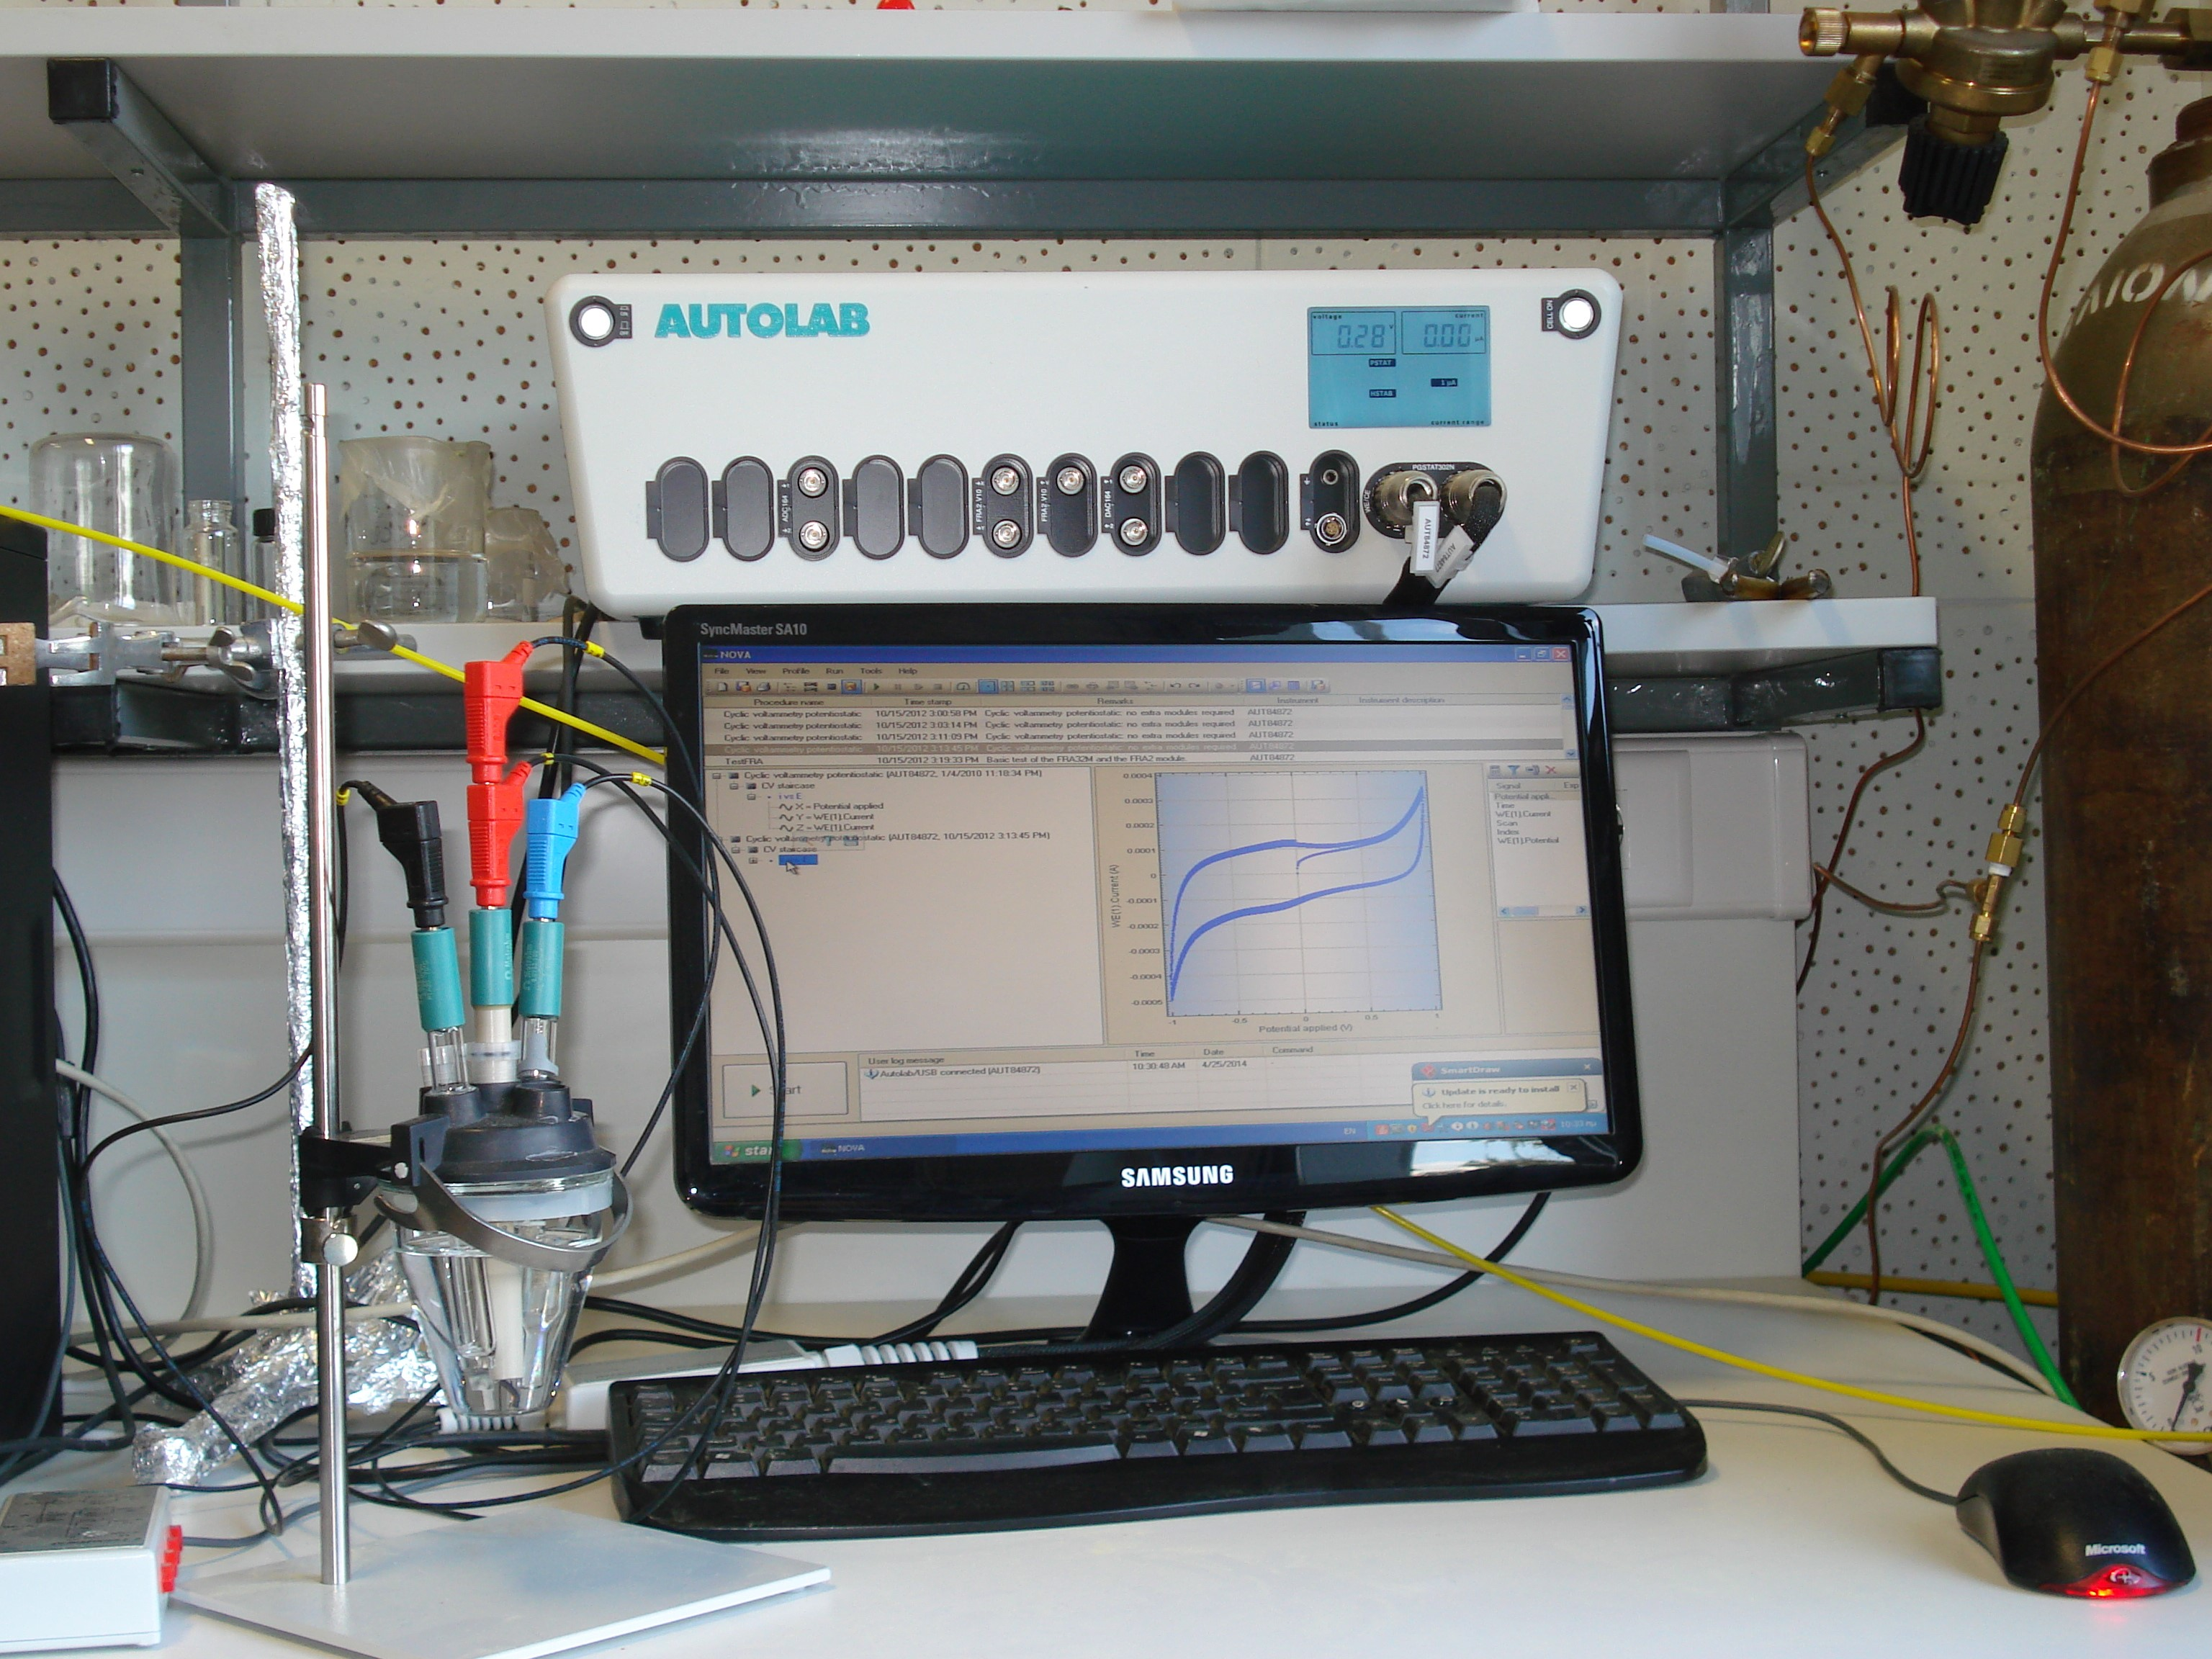 VersaSTAT MC analyser for electrochemical impedance spectroscopy (EIS), and cyclic voltammetry (CV) and Charge-Discharge Capacitance measurements